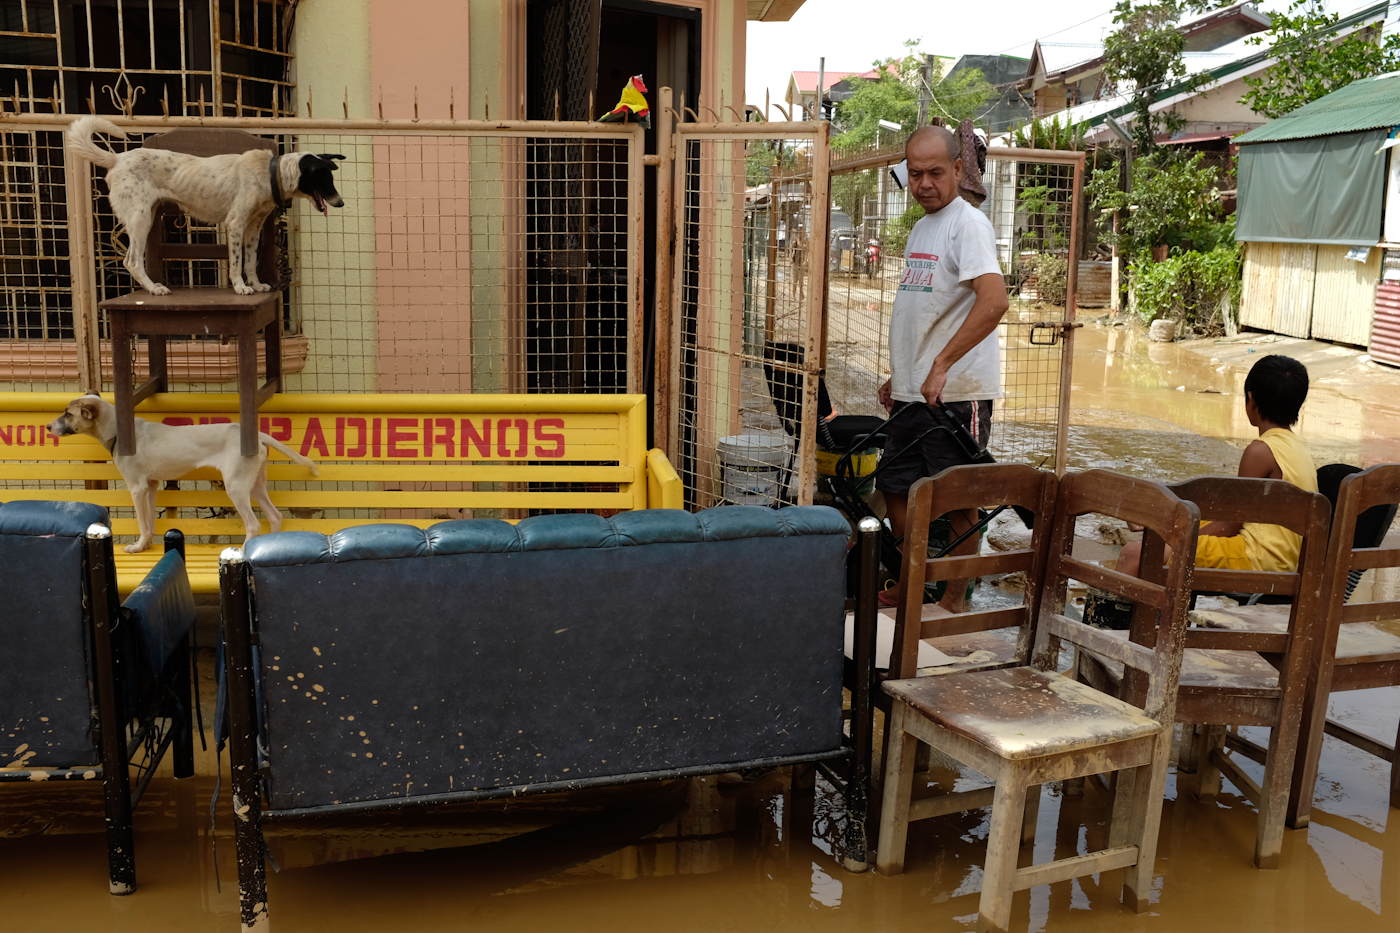 NOTHING SPARED. Even those supposedly on higher ground are not spared from the flash floods brought by the heavy rains of Typhoon Lando.